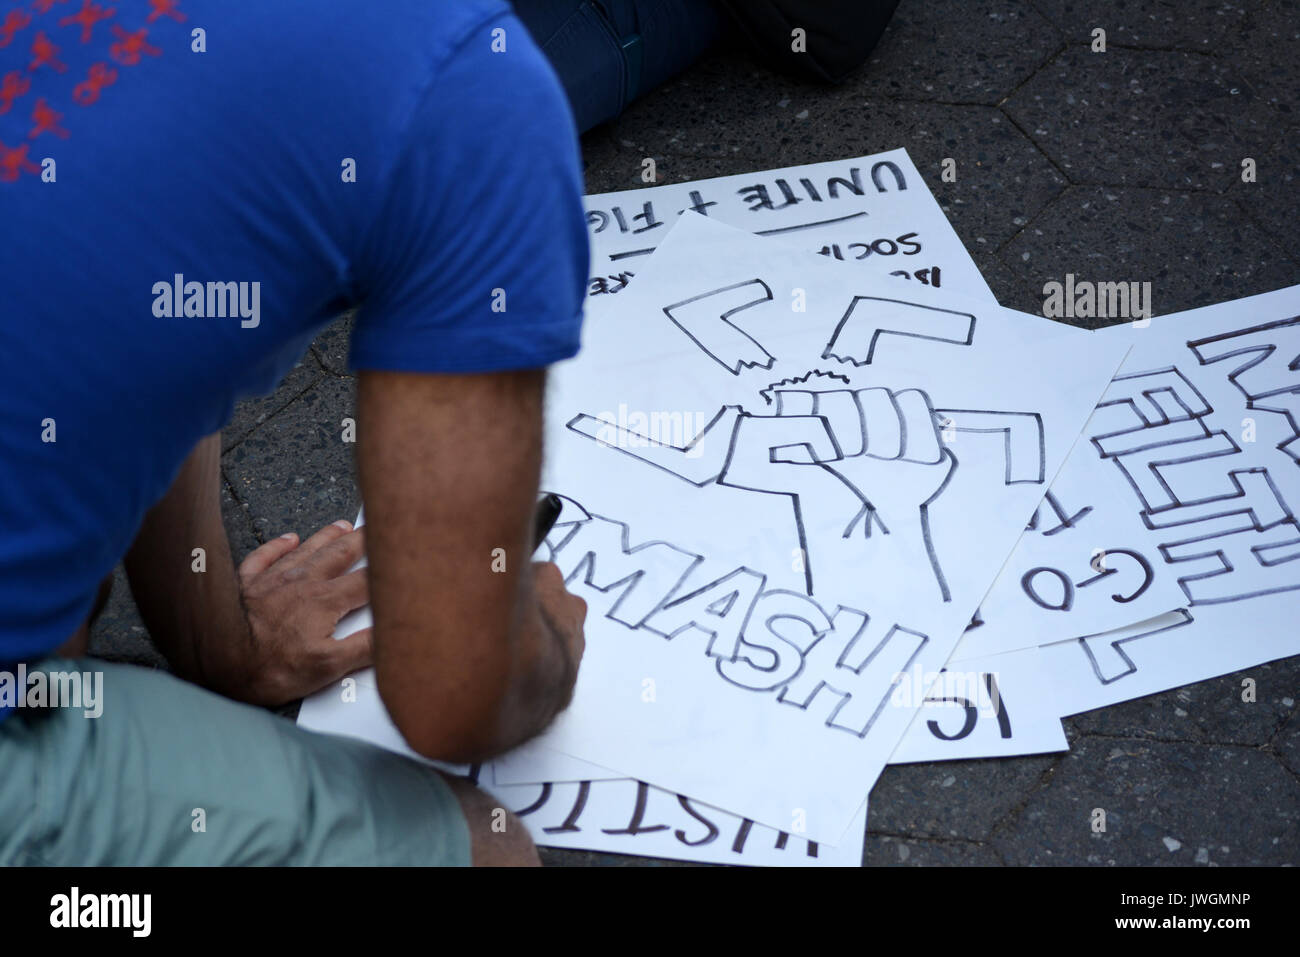 Protester making signs at a rally in Union Square in Manhattan to denounce neo-nazi violence in Charlottesville, Virginia and President Trump. - Stock Image